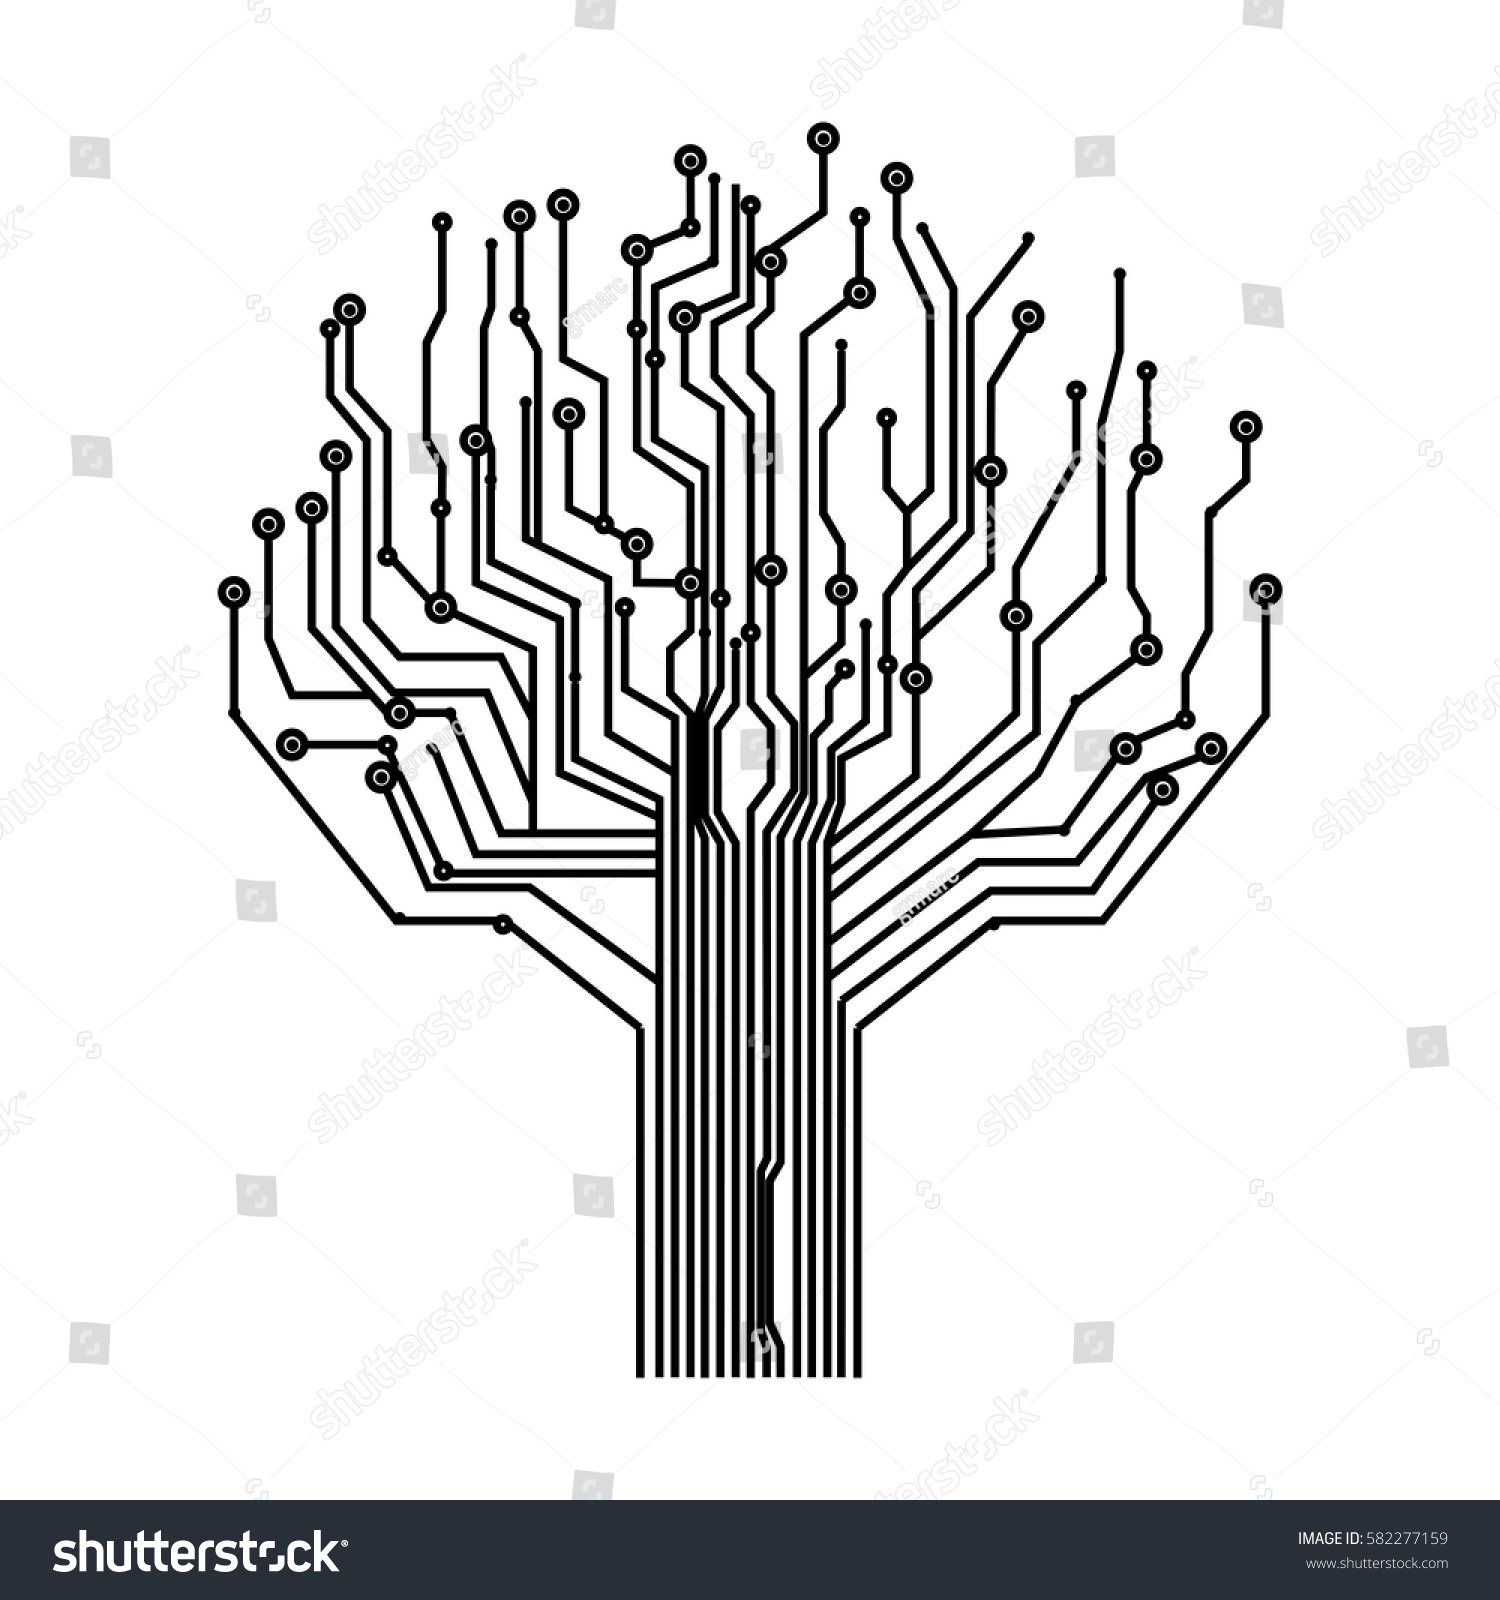 Silhouette Circuit Board Tree Background Vector Stock Vector ...